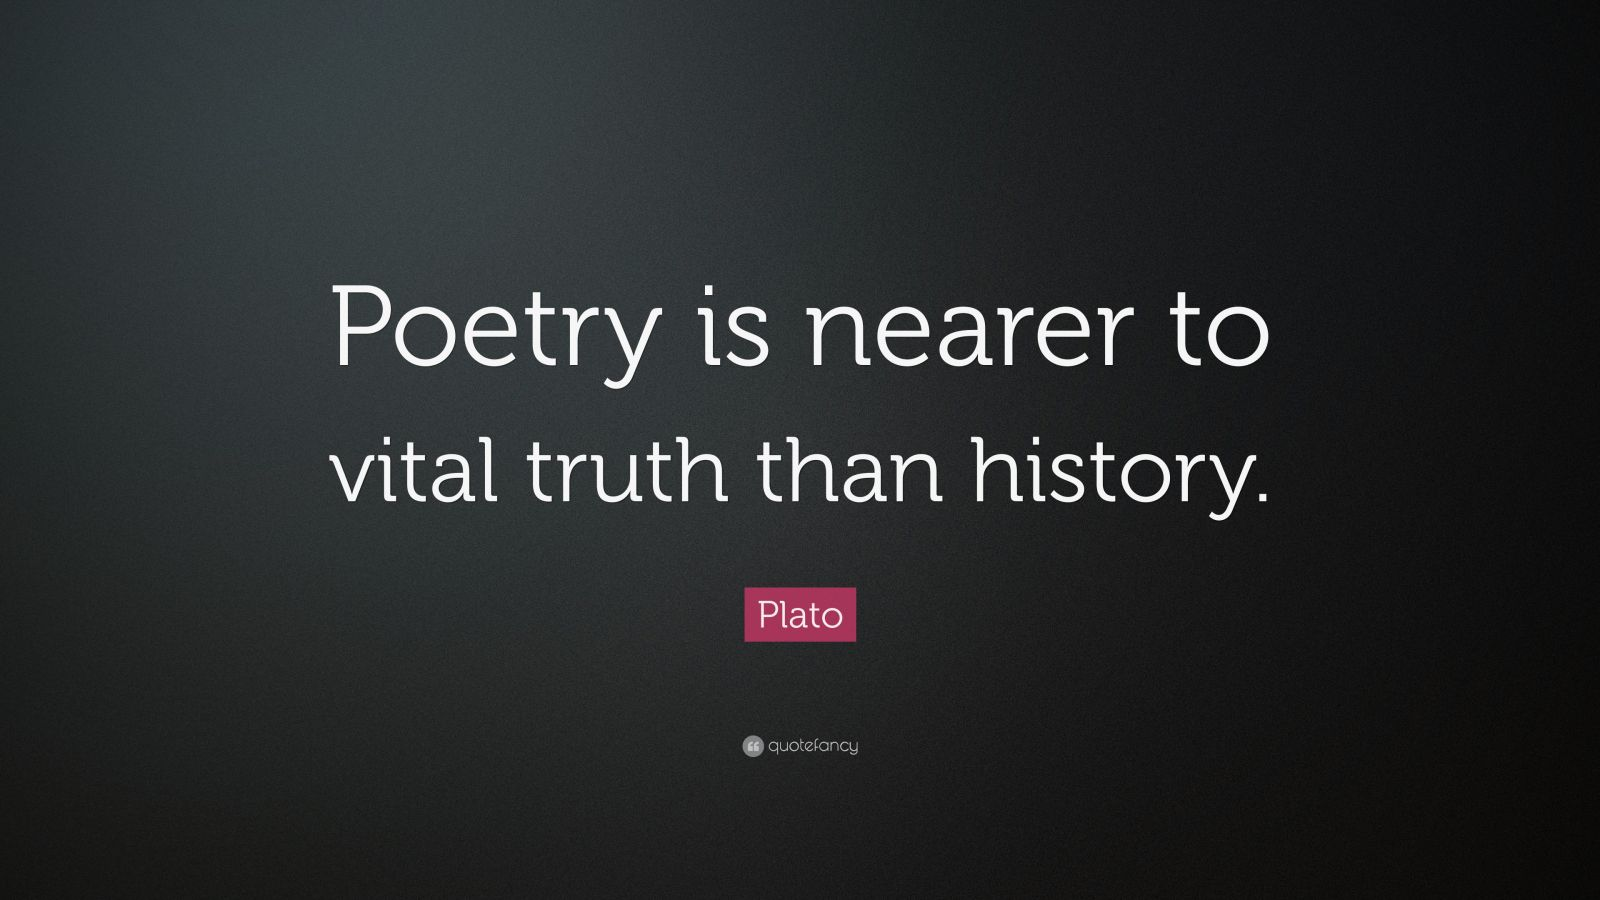 plato banning poetry Essay on poetic theory from the republic by plato in book x, plato concludes that poetry must be banished from the hypothetical, ideal society however, if poetry makes a defense for herself in.